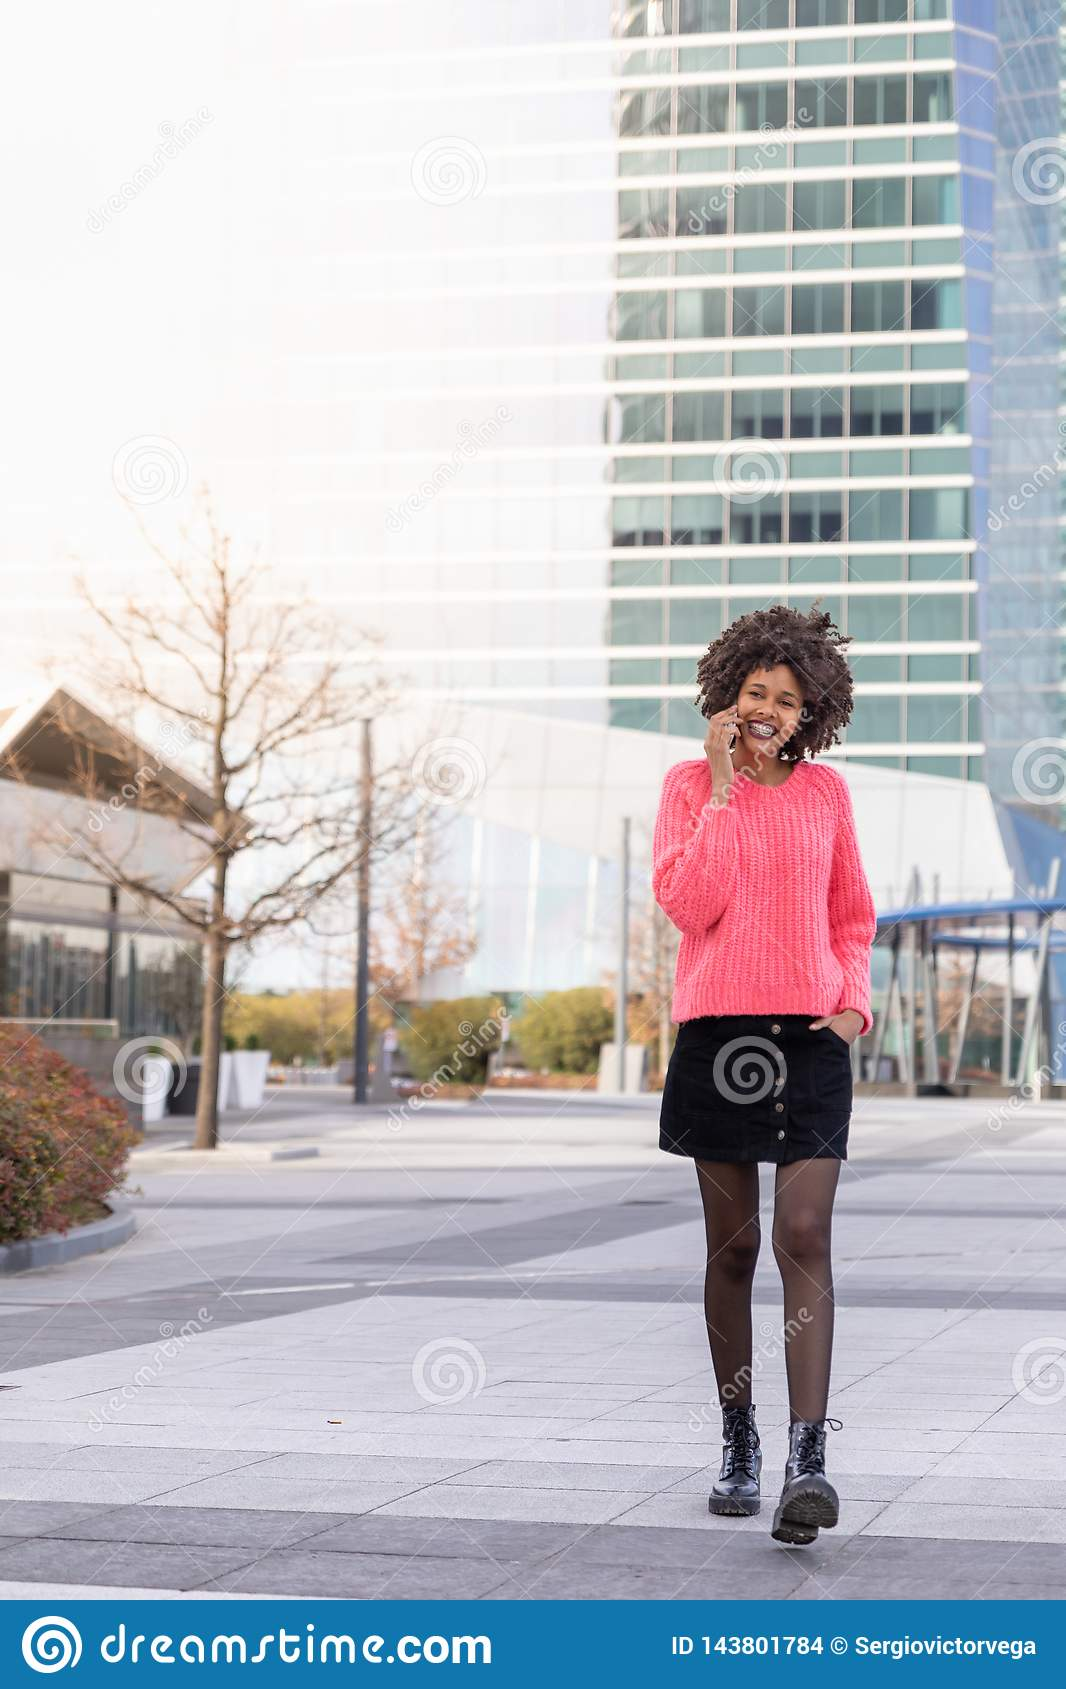 Black girl with the phone around the city